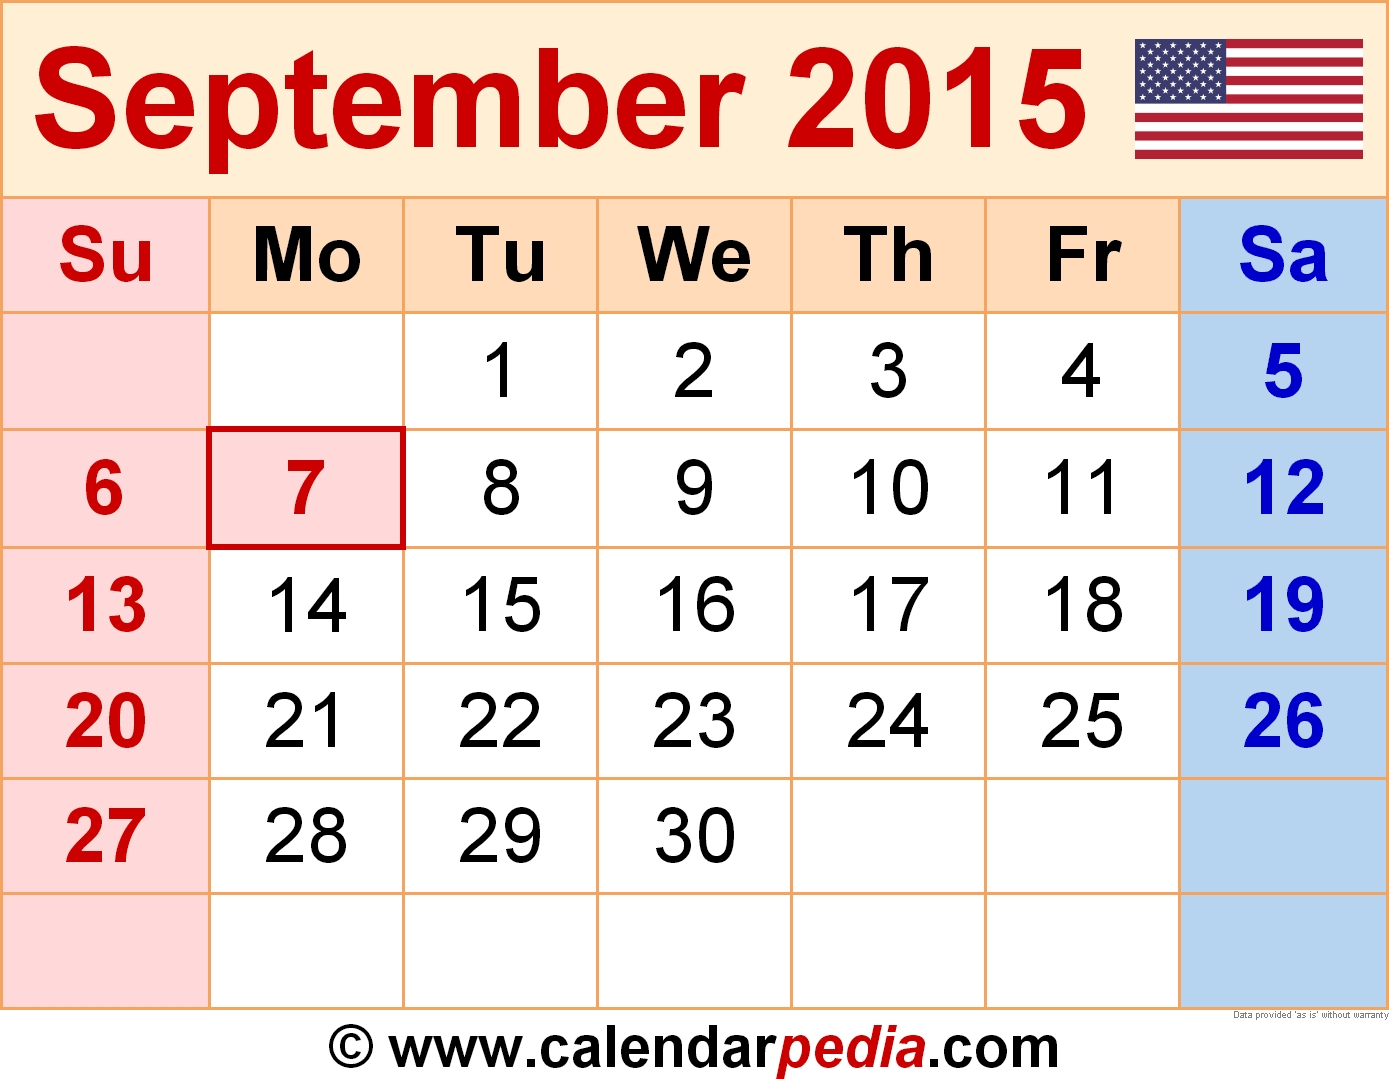 September 2015 Calendars For Word, Excel & Pdf  Calendar For The Month Of September